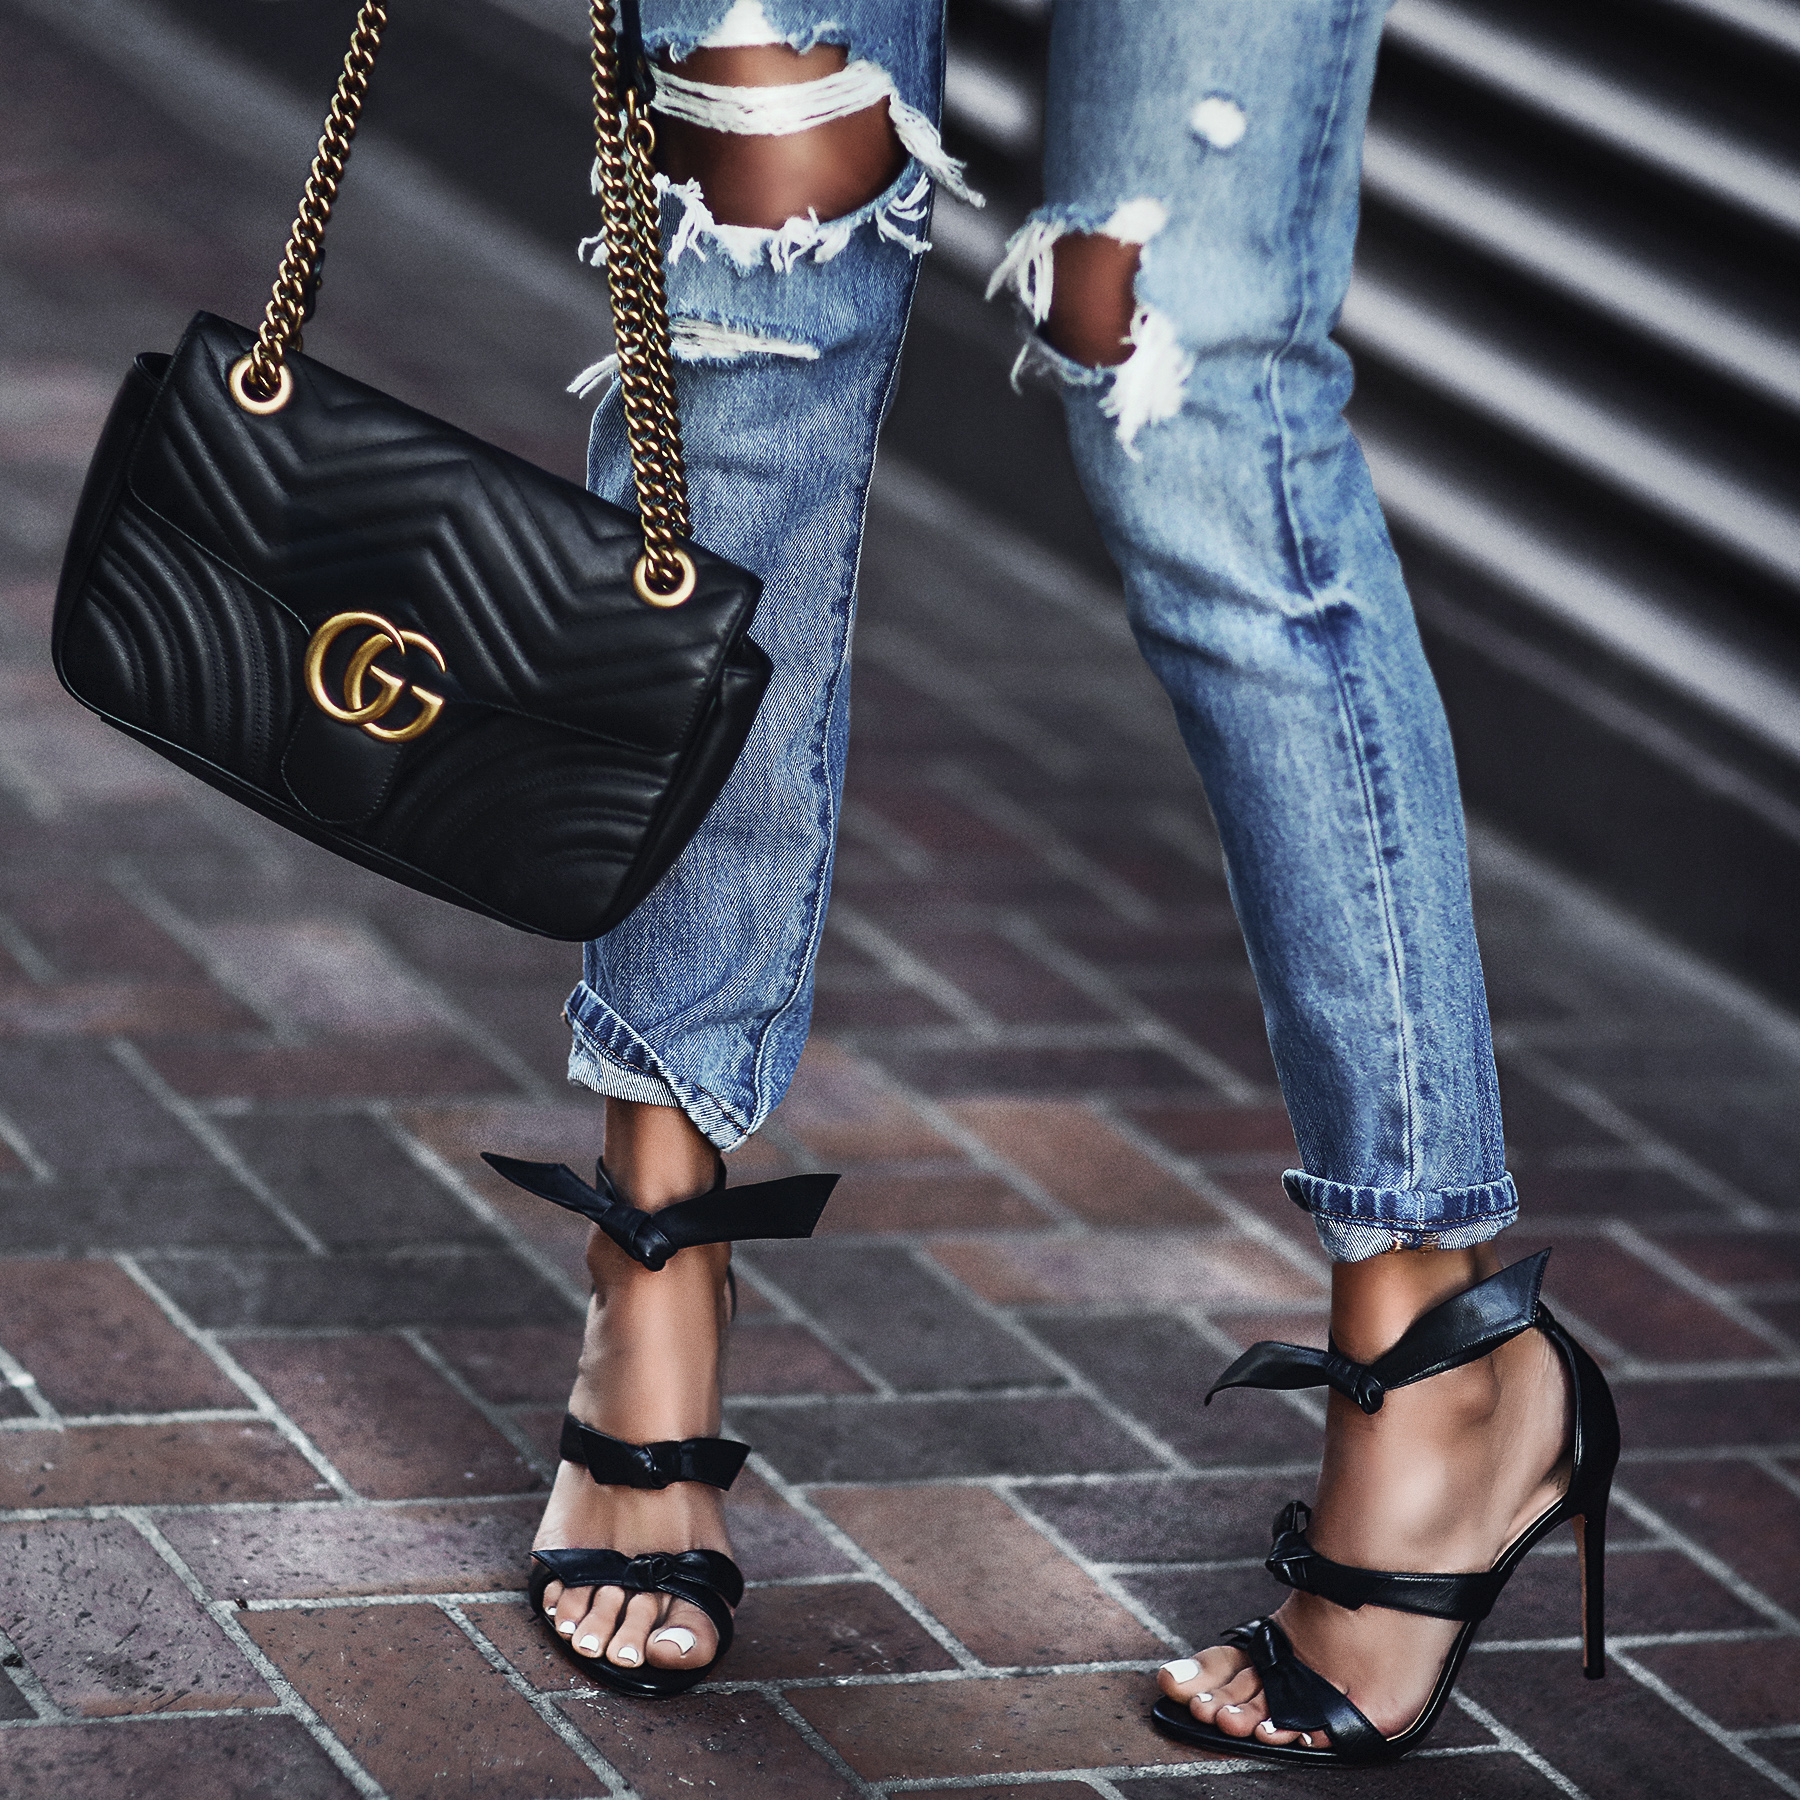 ripped levi's, black heels with bows, gucci bag